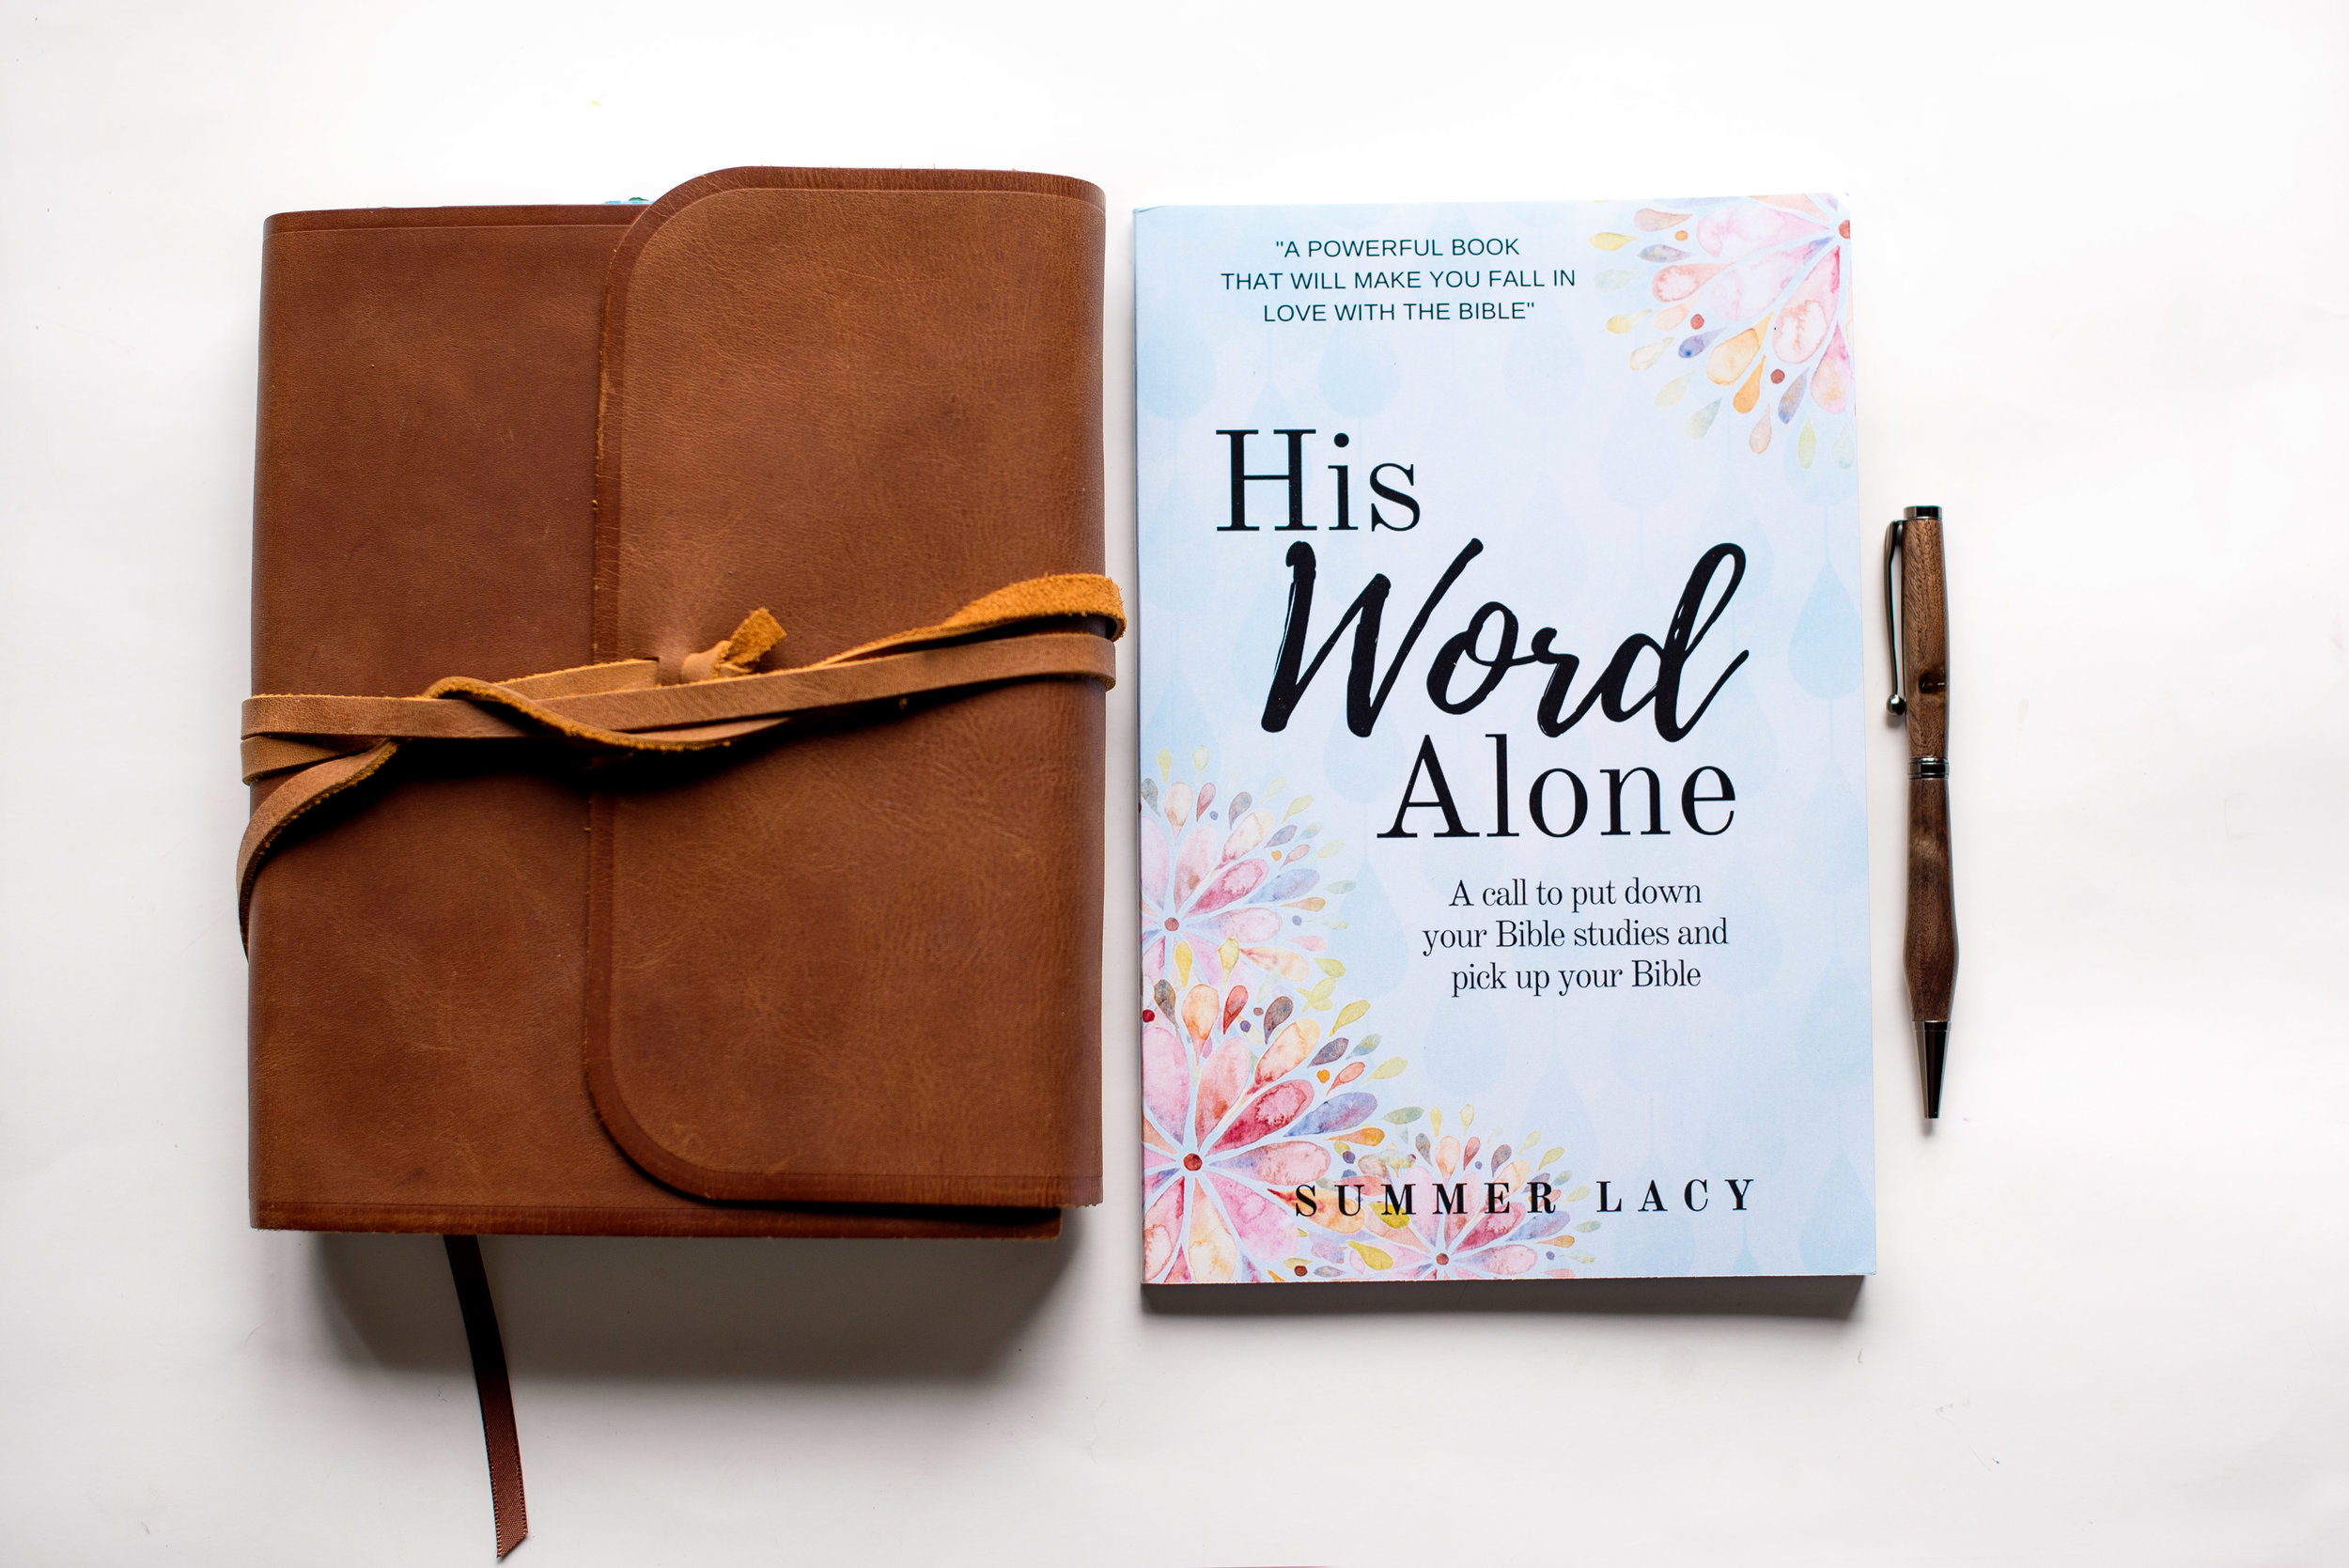 Looking for a way to put the Bible back in your Bible study? - The second edition of my book, His Word Alone; A call to put down your Bible studies and pick up your Bible is being released this May. Pre-Order your copy today! CLICK HERE!